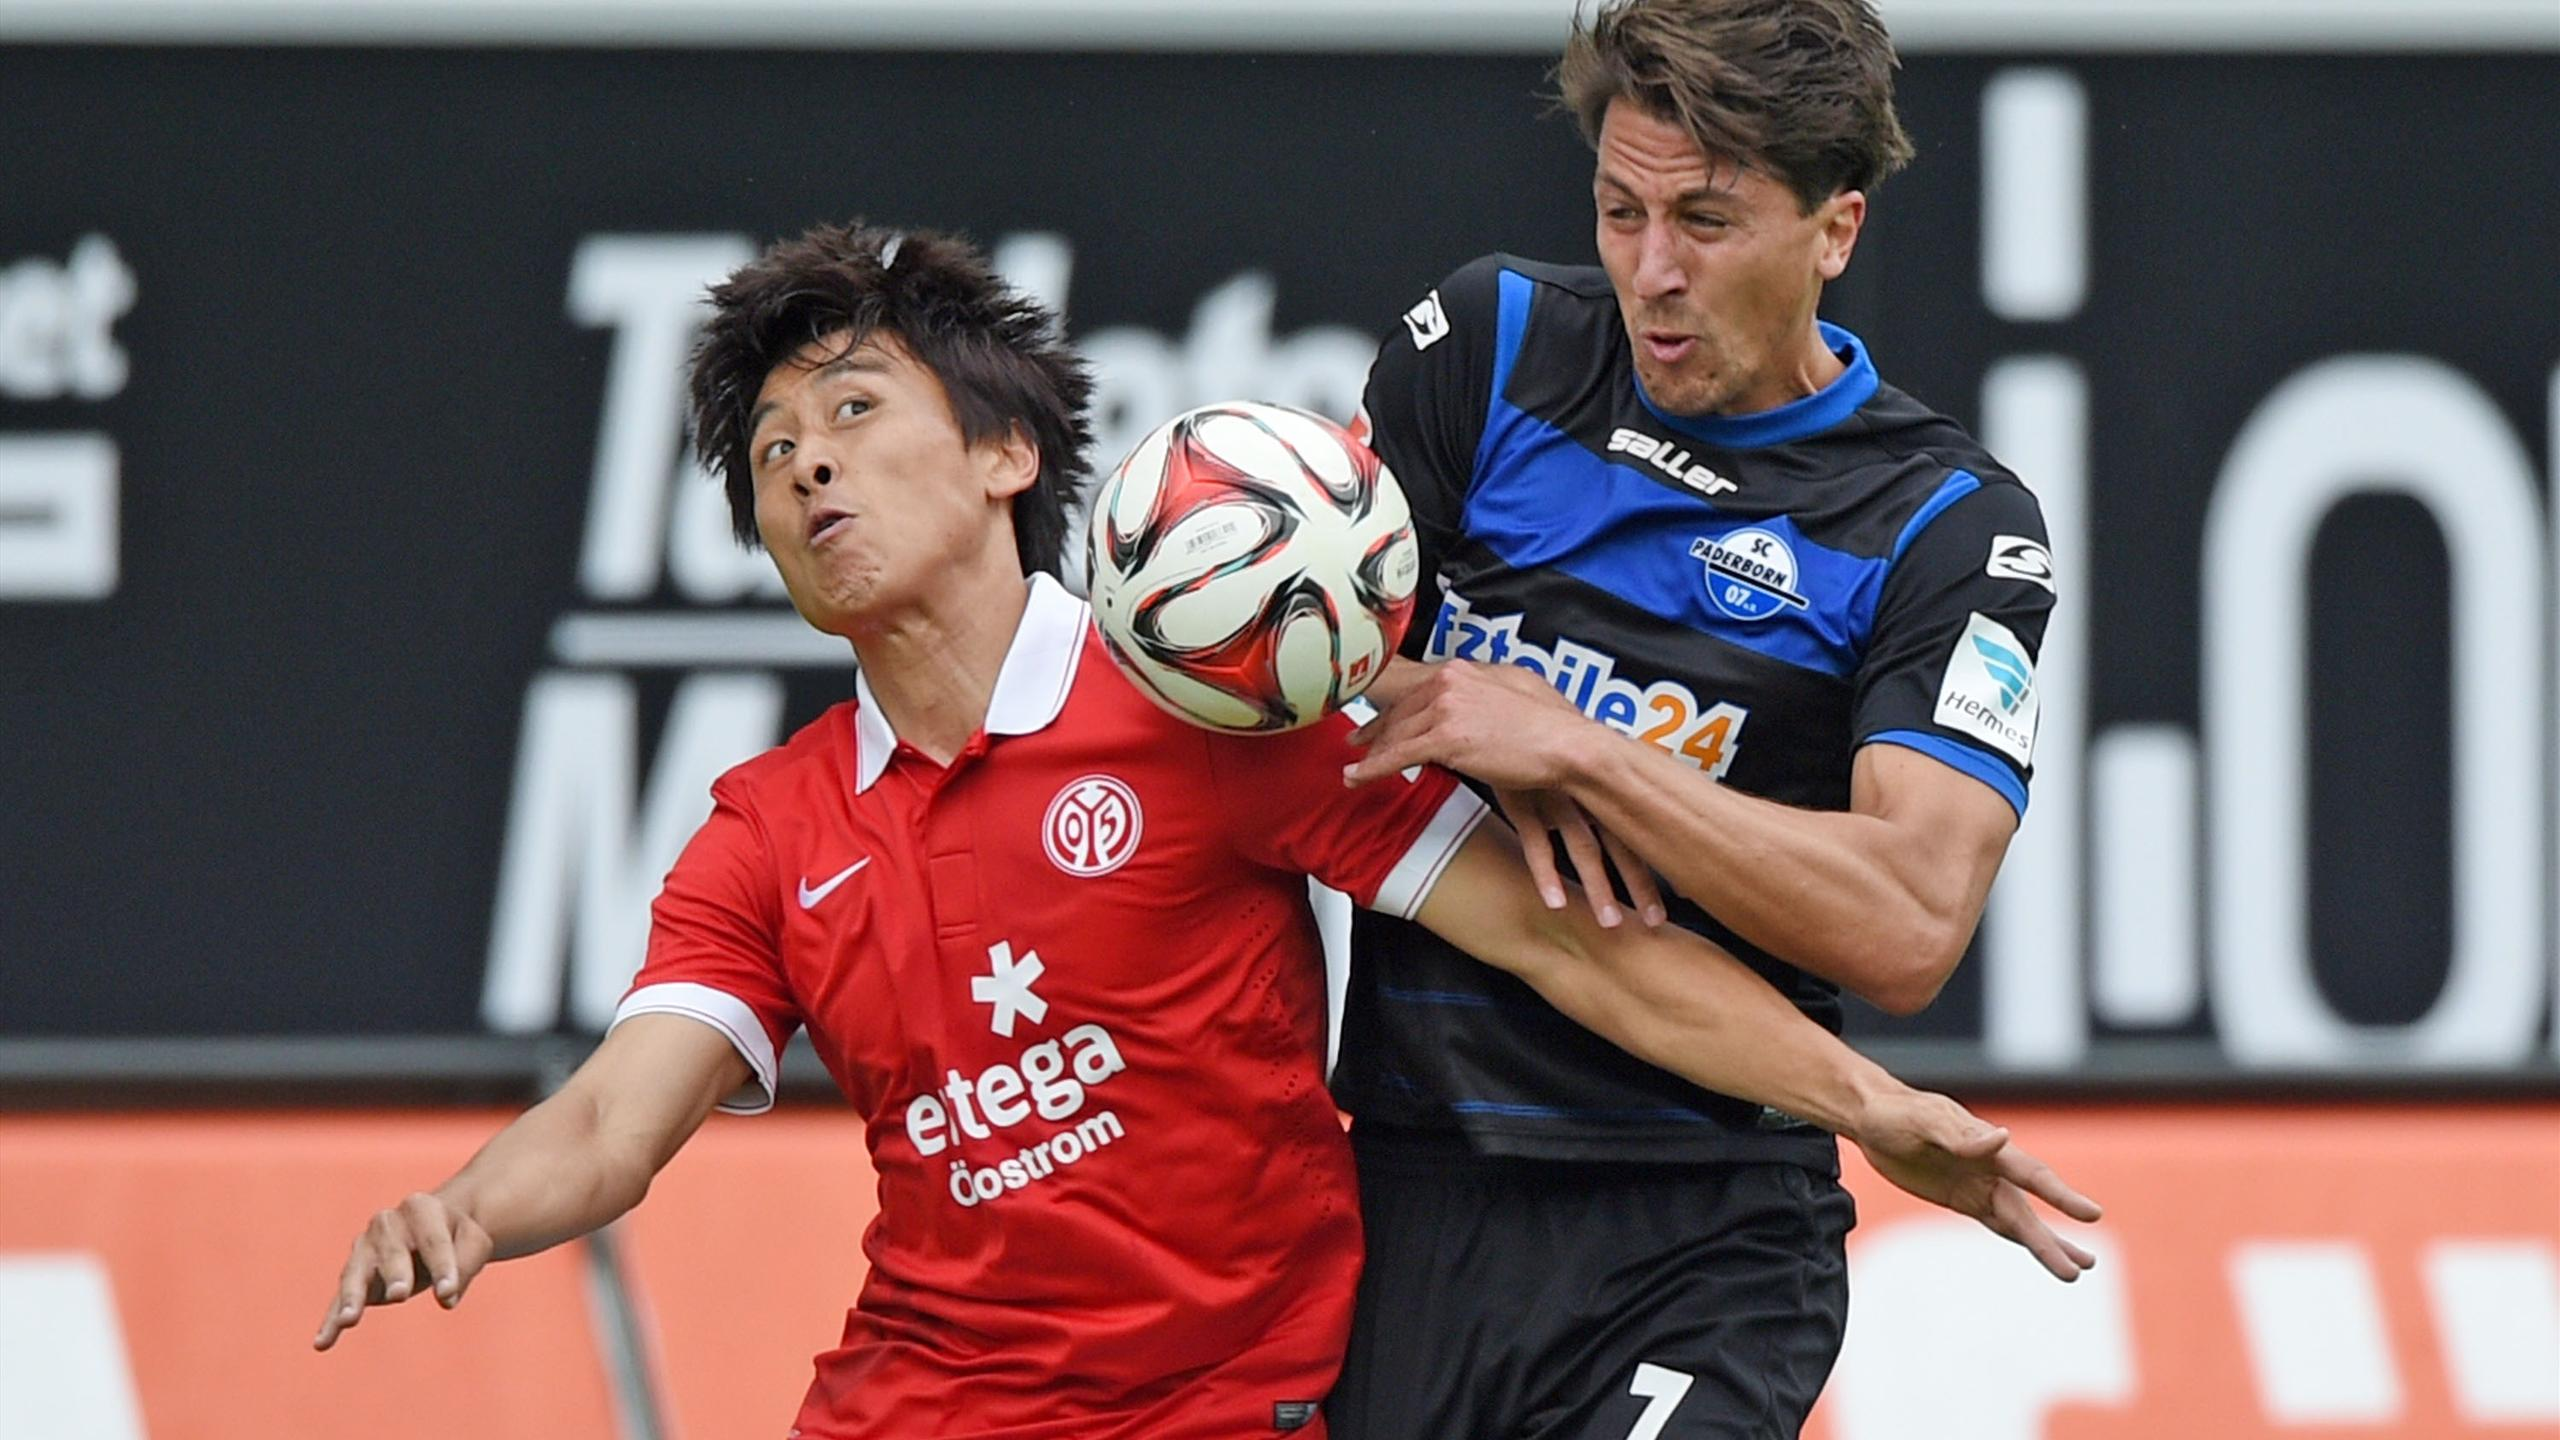 Video: Paderborn vs Mainz 05